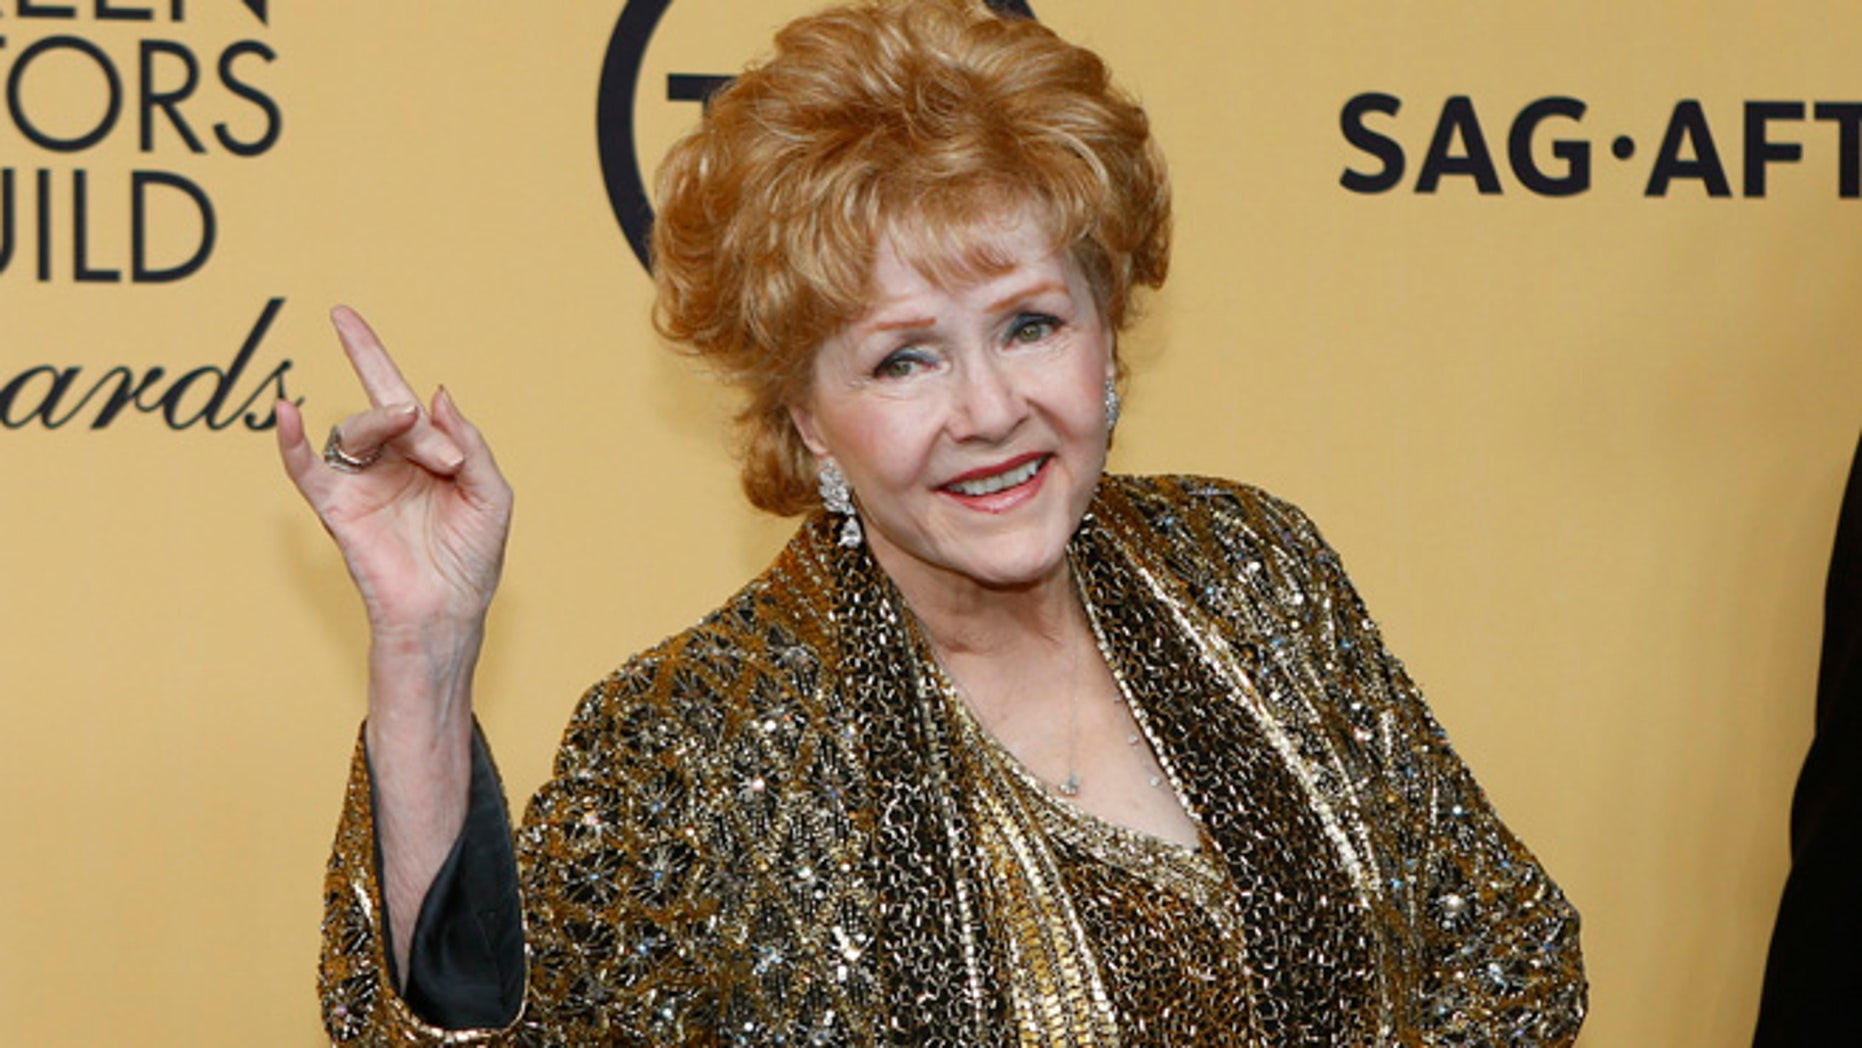 Actress Debbie Reynolds poses backstage after accepting her Lifetime Achievement awards at the 21st annual Screen Actors Guild Awards in Los Angeles, California January 25, 2015.  REUTERS/Mike Blake (UNITED STATES - Tags: ENTERTAINMENT) (SAGAWARDS-BACKSTAGE) - RTR4MVKC